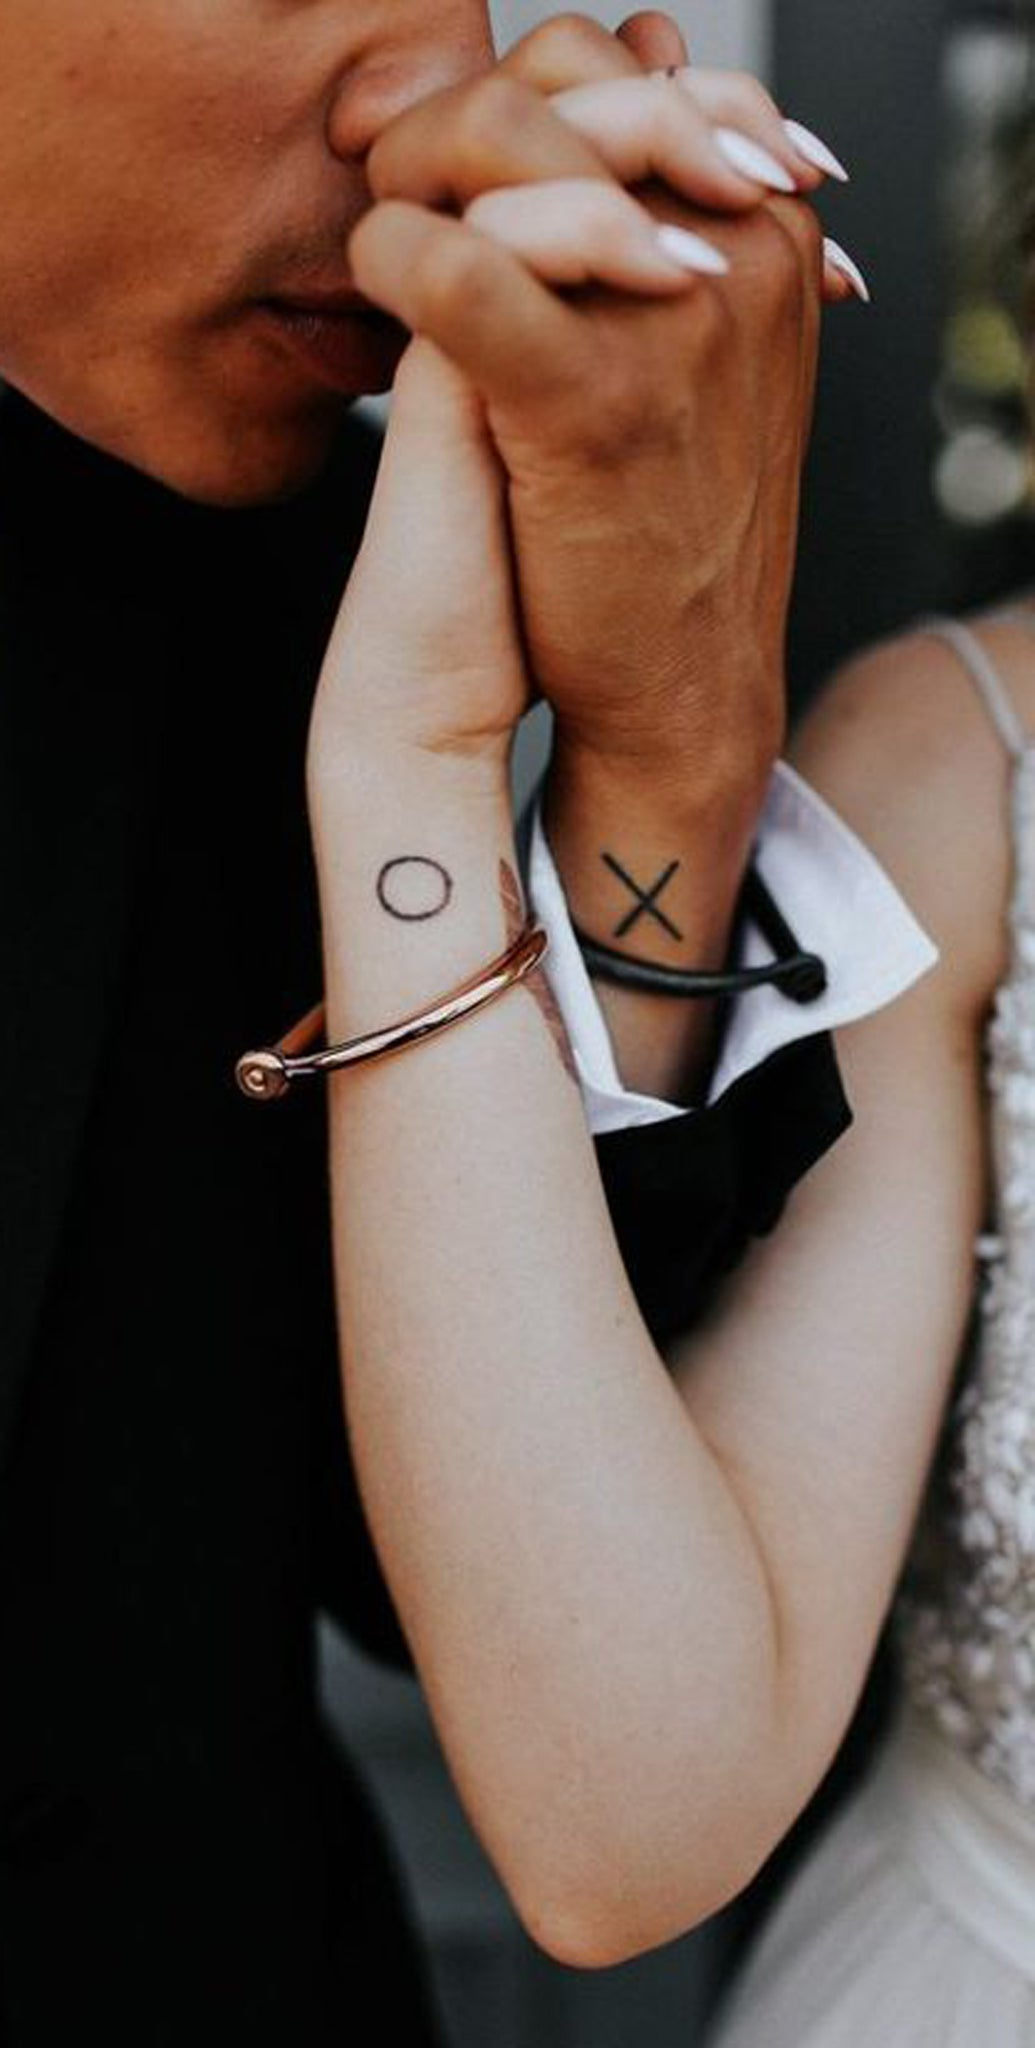 Cute Matching Couple Tattoo Ideas - Small XO Wrist Tatouage for Girlfriend Boyfriend -  Ideas Del Tatuaje - www.MyBodiArt.com